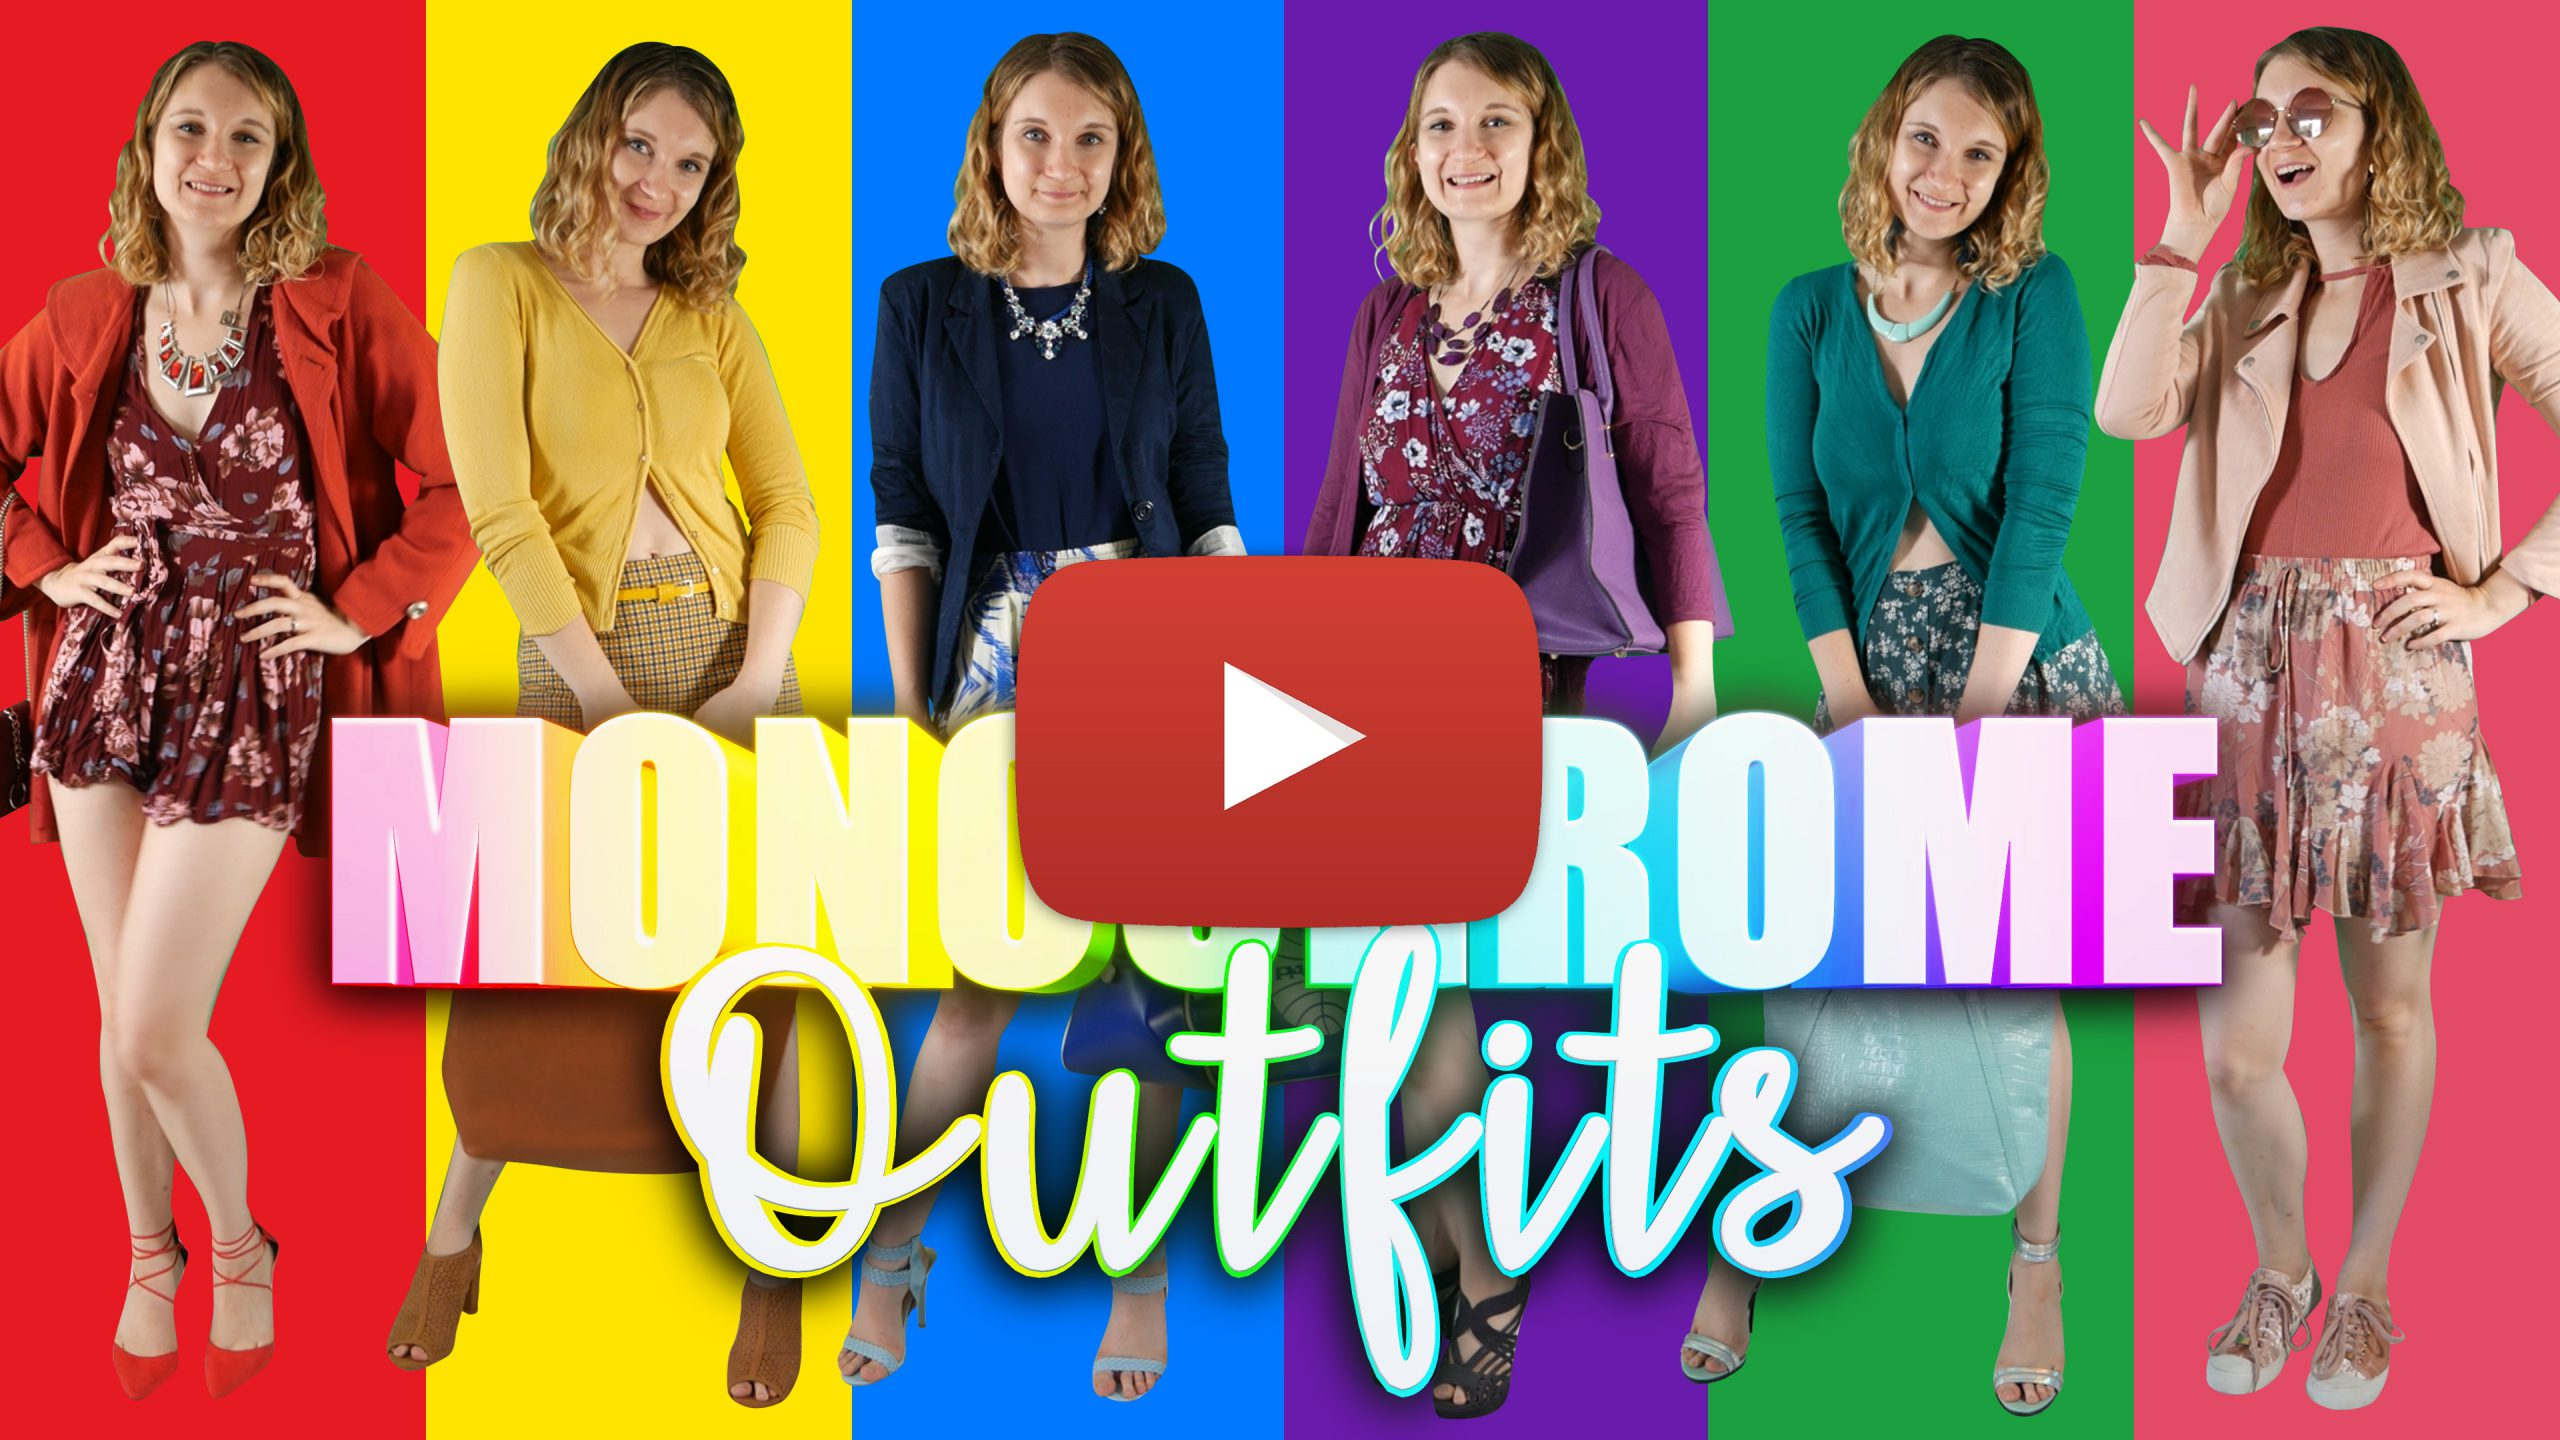 Monochromatic Outfits Youtube Thumbnail Play Button